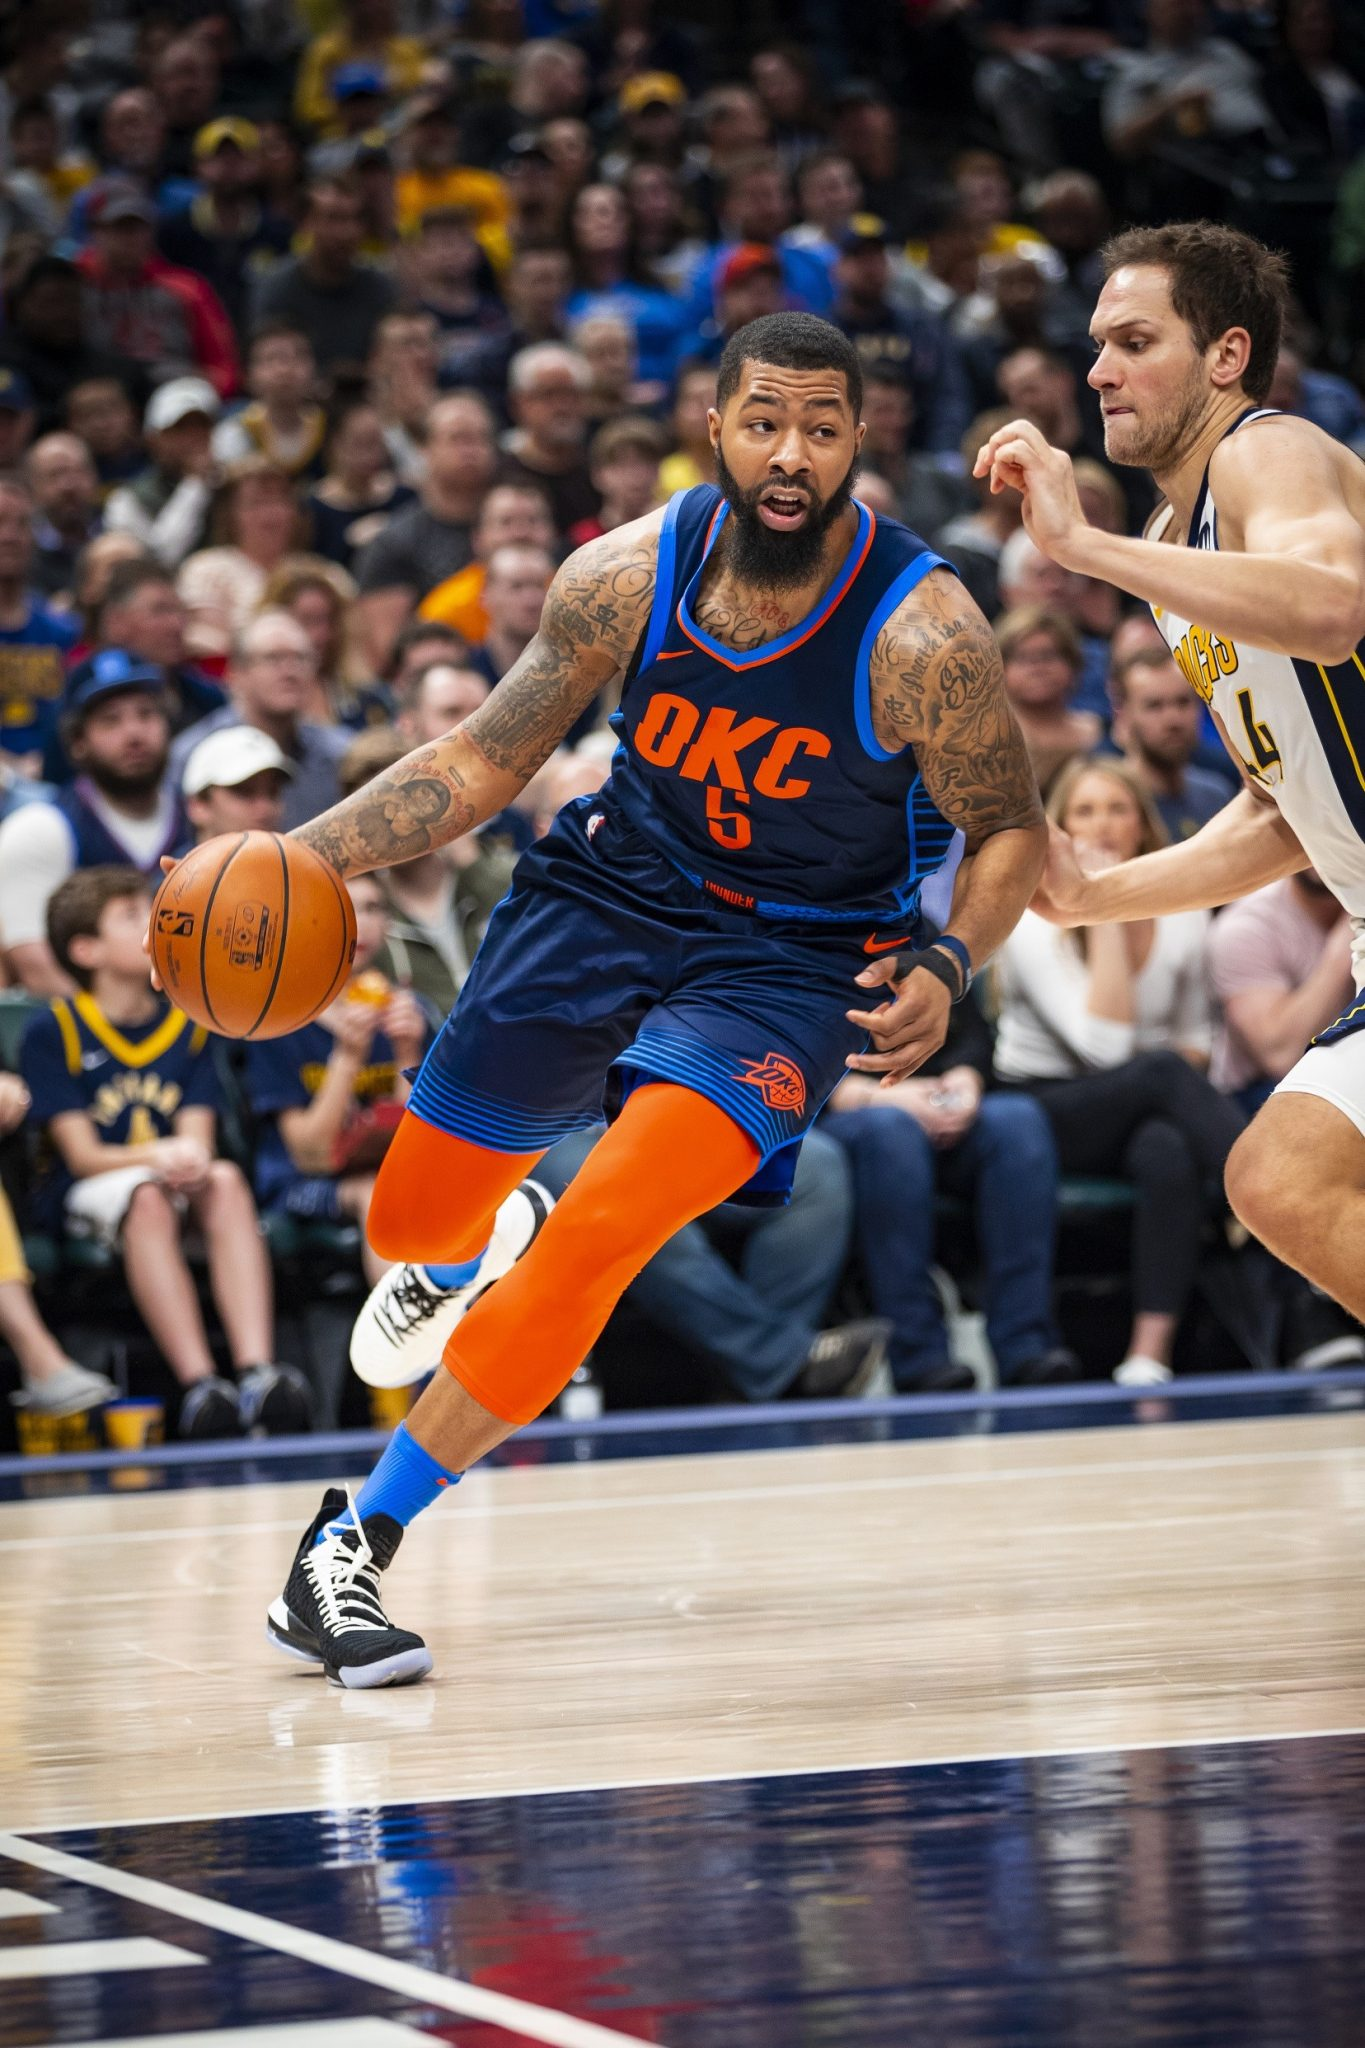 INDIANAPOLIS, IN - MARCH 14:  Markieff Morris #5 of the Oklahoma City Thunder handles the ball against the Indiana Pacers on March 14, 2019 at Bankers Life Fieldhouse in Indianapolis, Indiana. Copyright 2019 NBAE (Photo by Zach Beeker/NBAE via Getty Images)